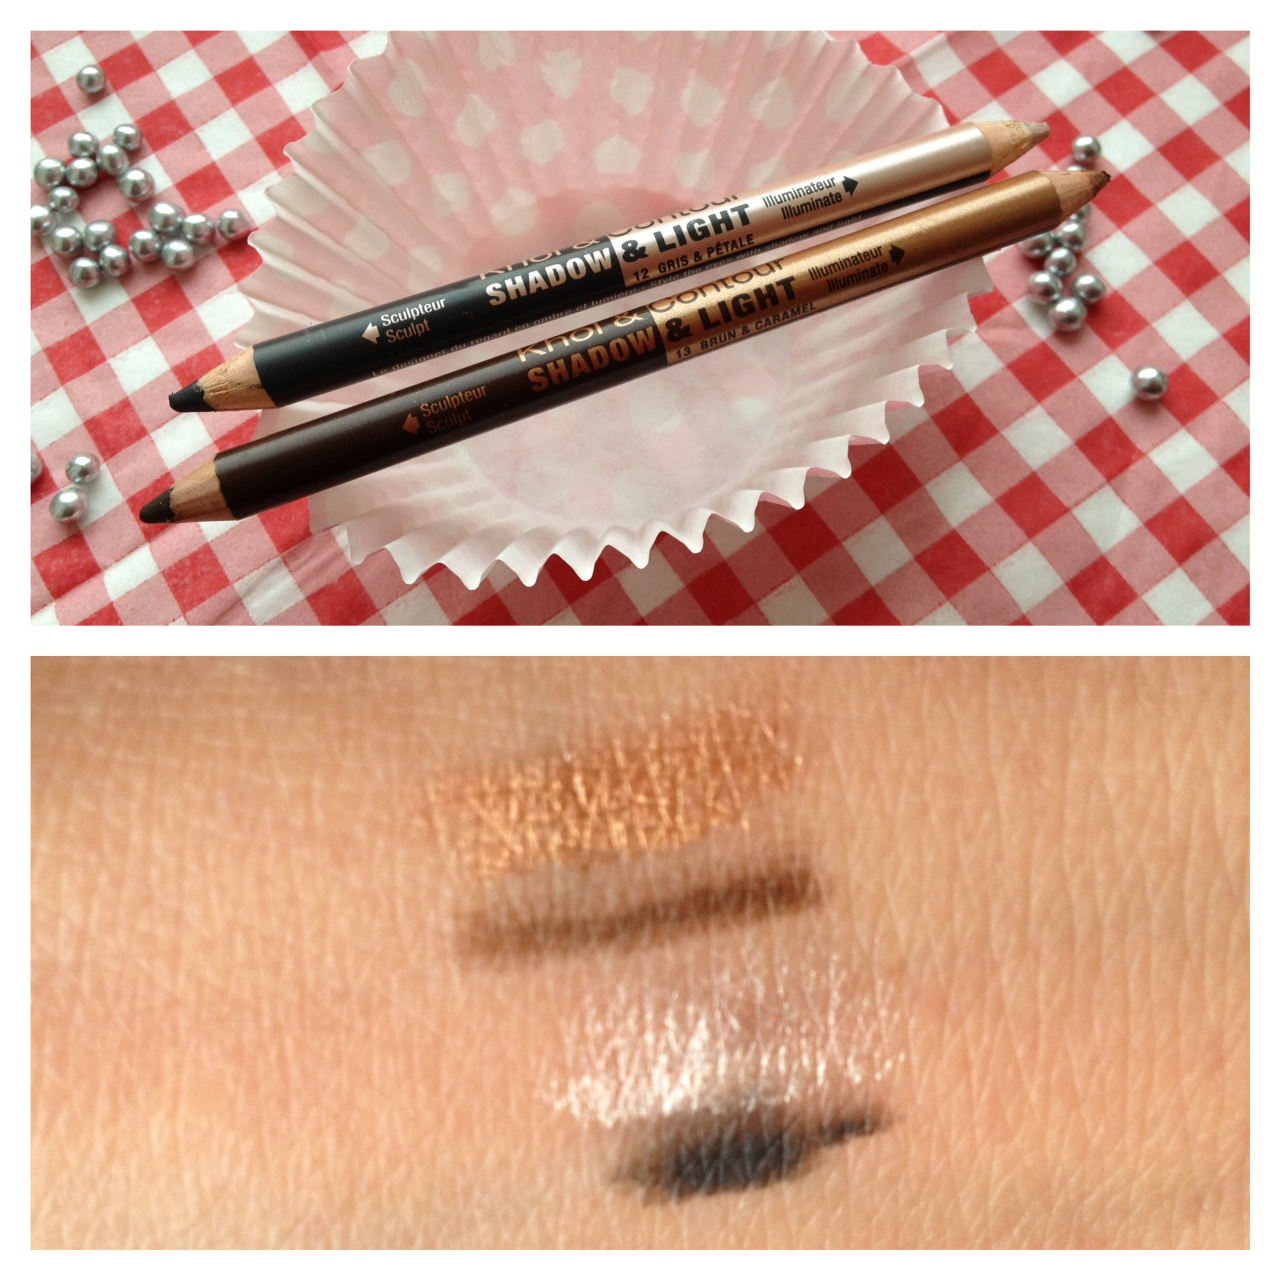 Bourjois Kohl and Contour Shadow and Light